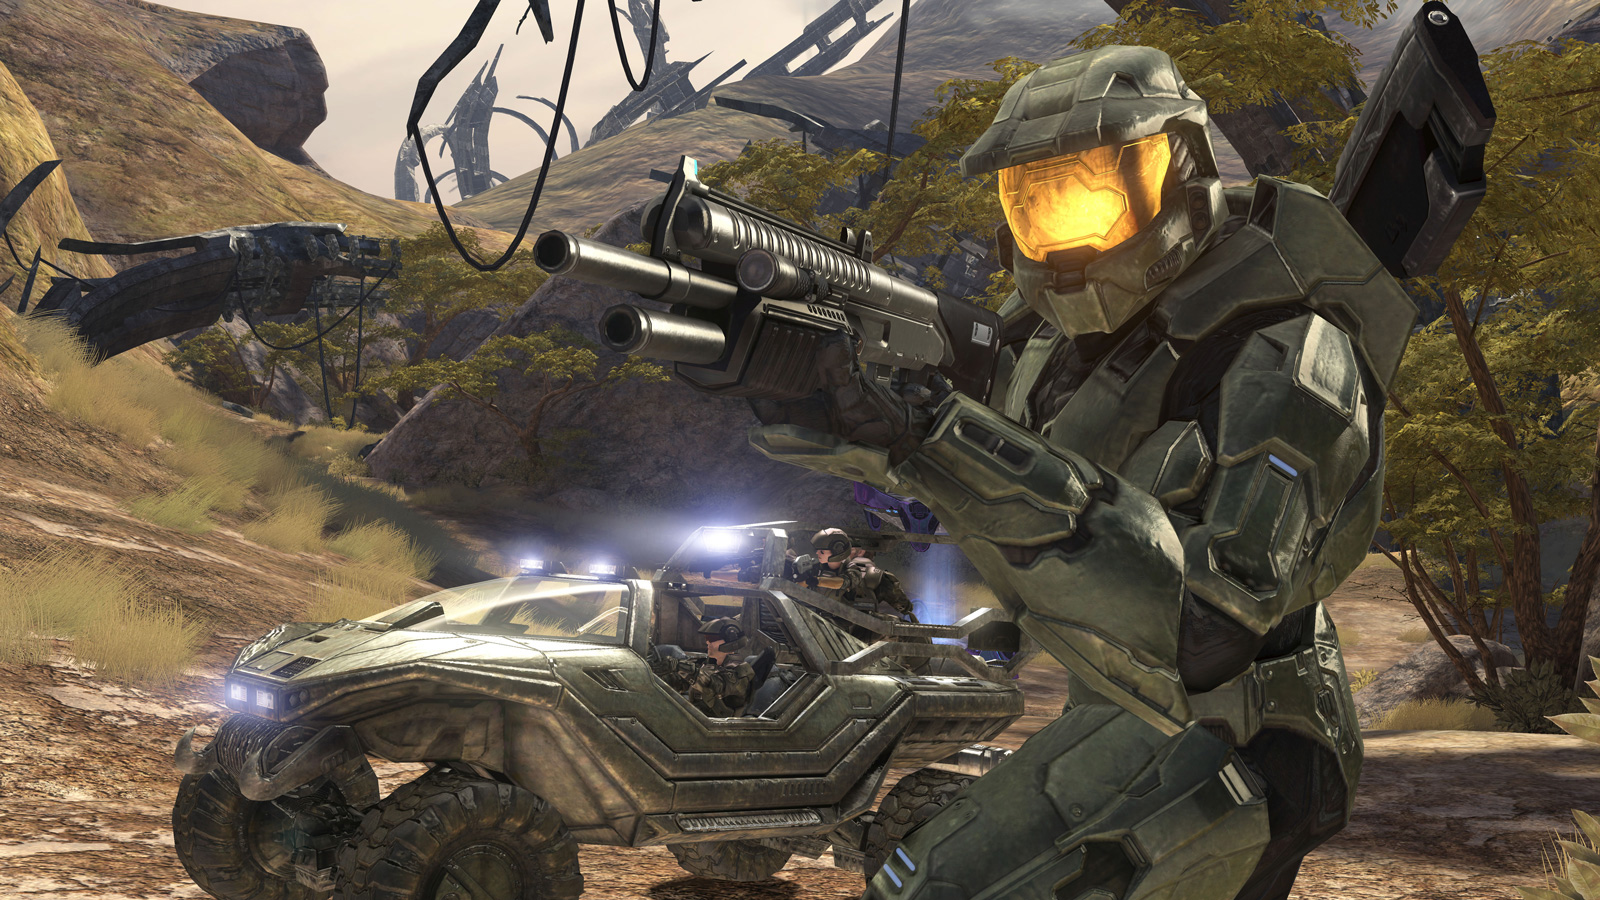 file_6595_Halo-3-screenshots-2